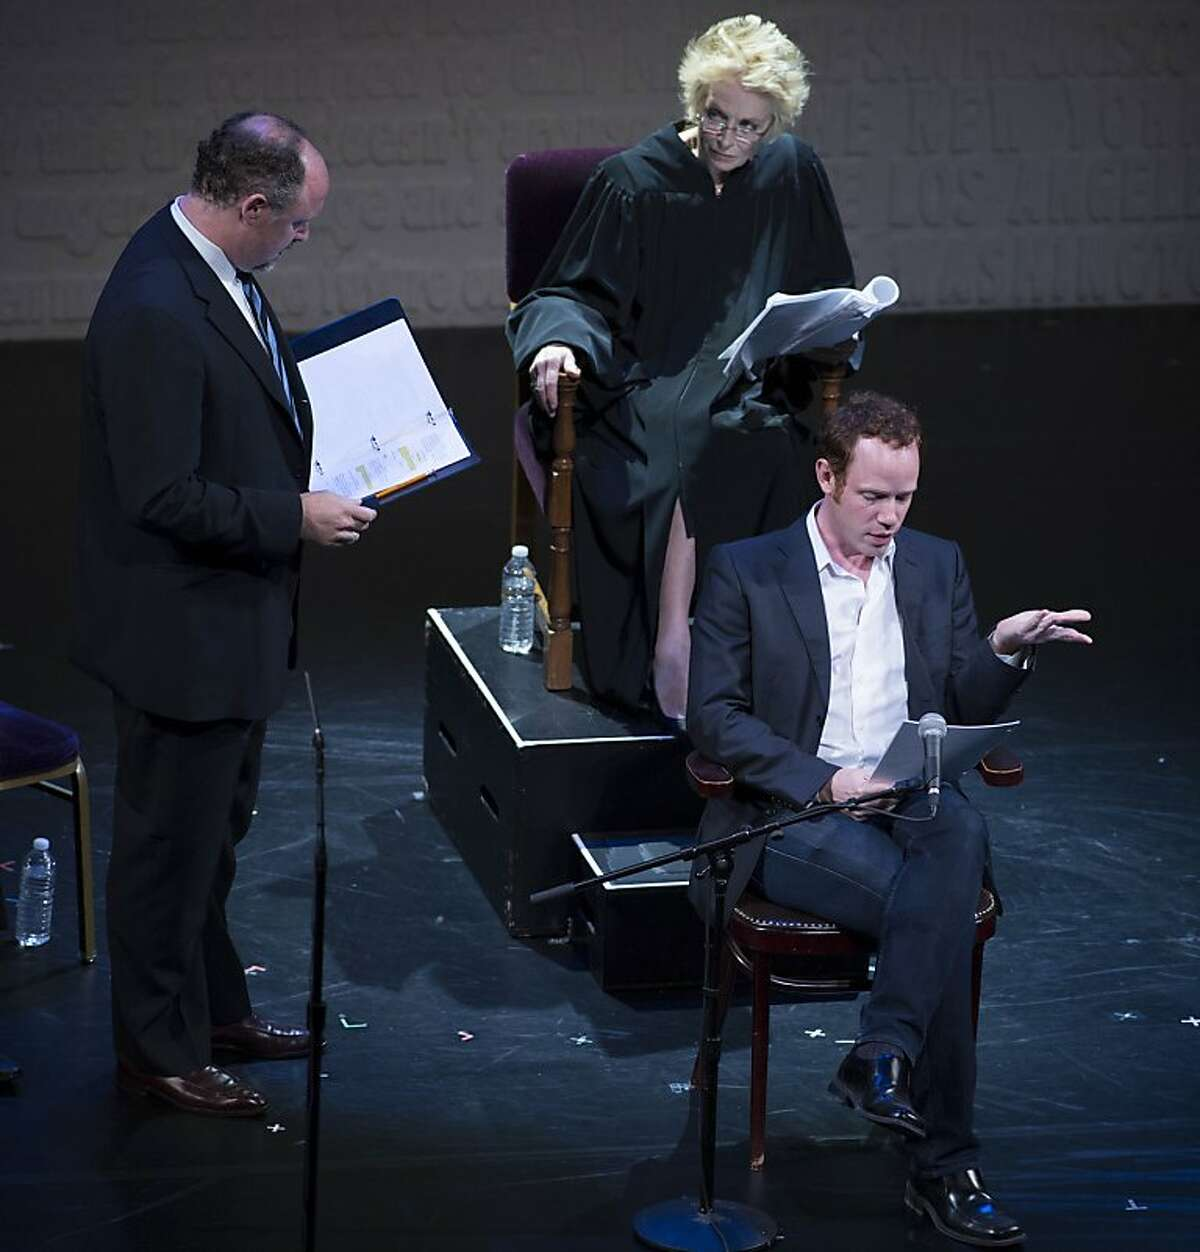 PHOTO2 California Shakespeare Theater s Artistic Director Jonathan Moscone (David Boies), Holland Taylor (Chief Judge Vaughn R. Walker) and Sean Dugan (David Blankenhorn) in A.C.T. s staged reading of Dustin Lance Black s 8